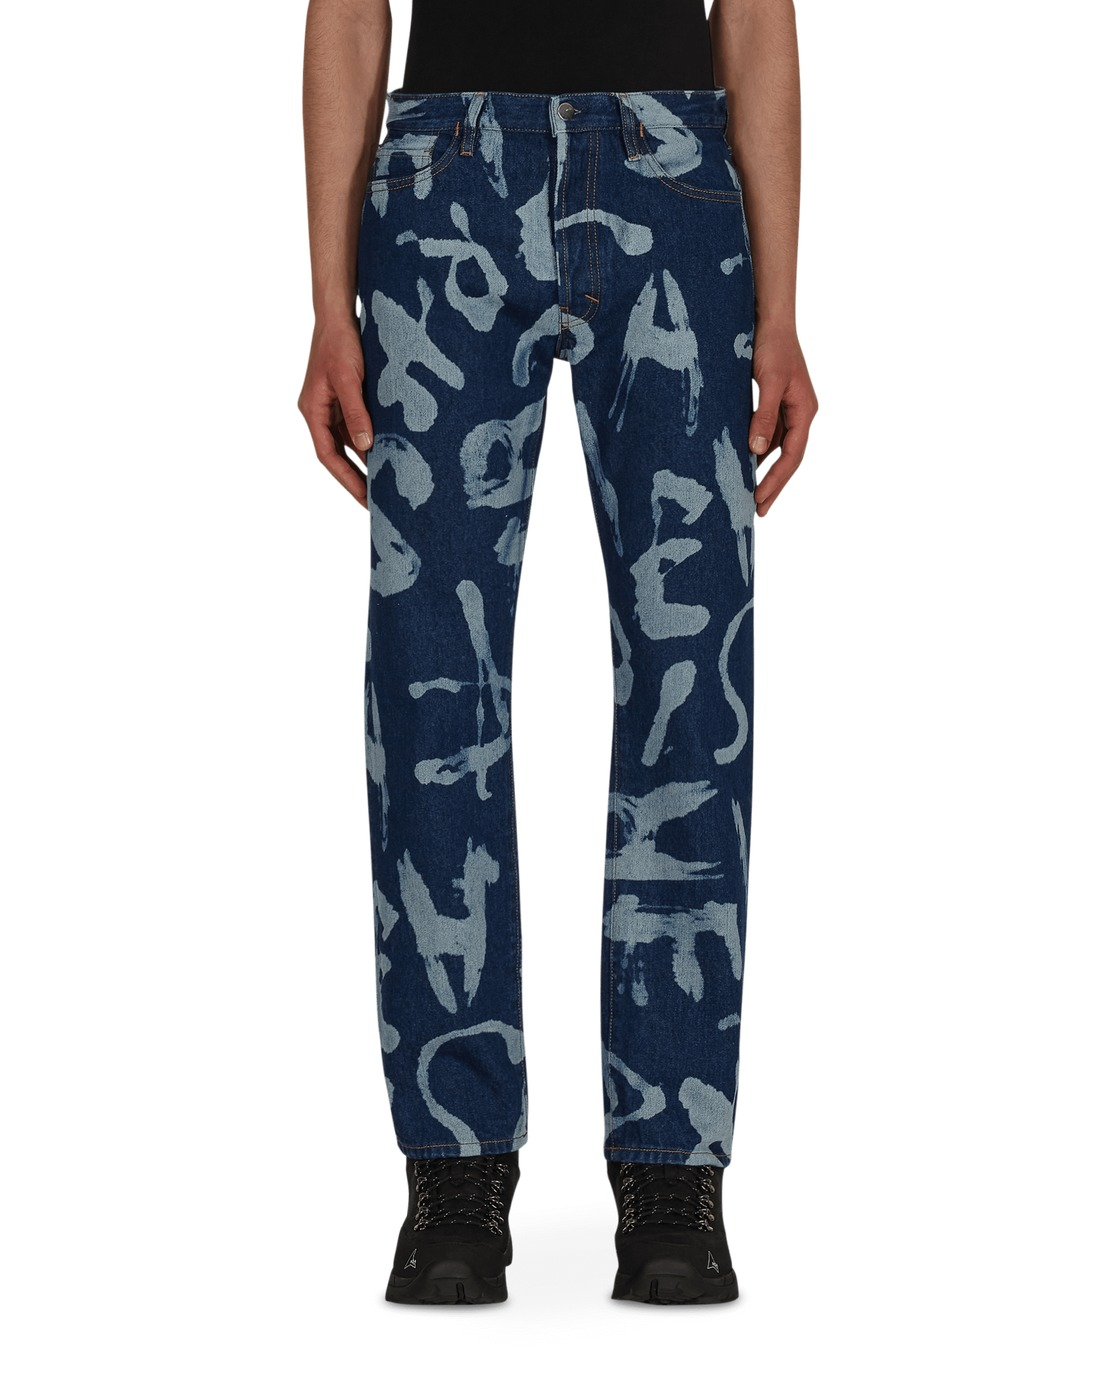 Aries Alphabetti Lilly Jeans Blue